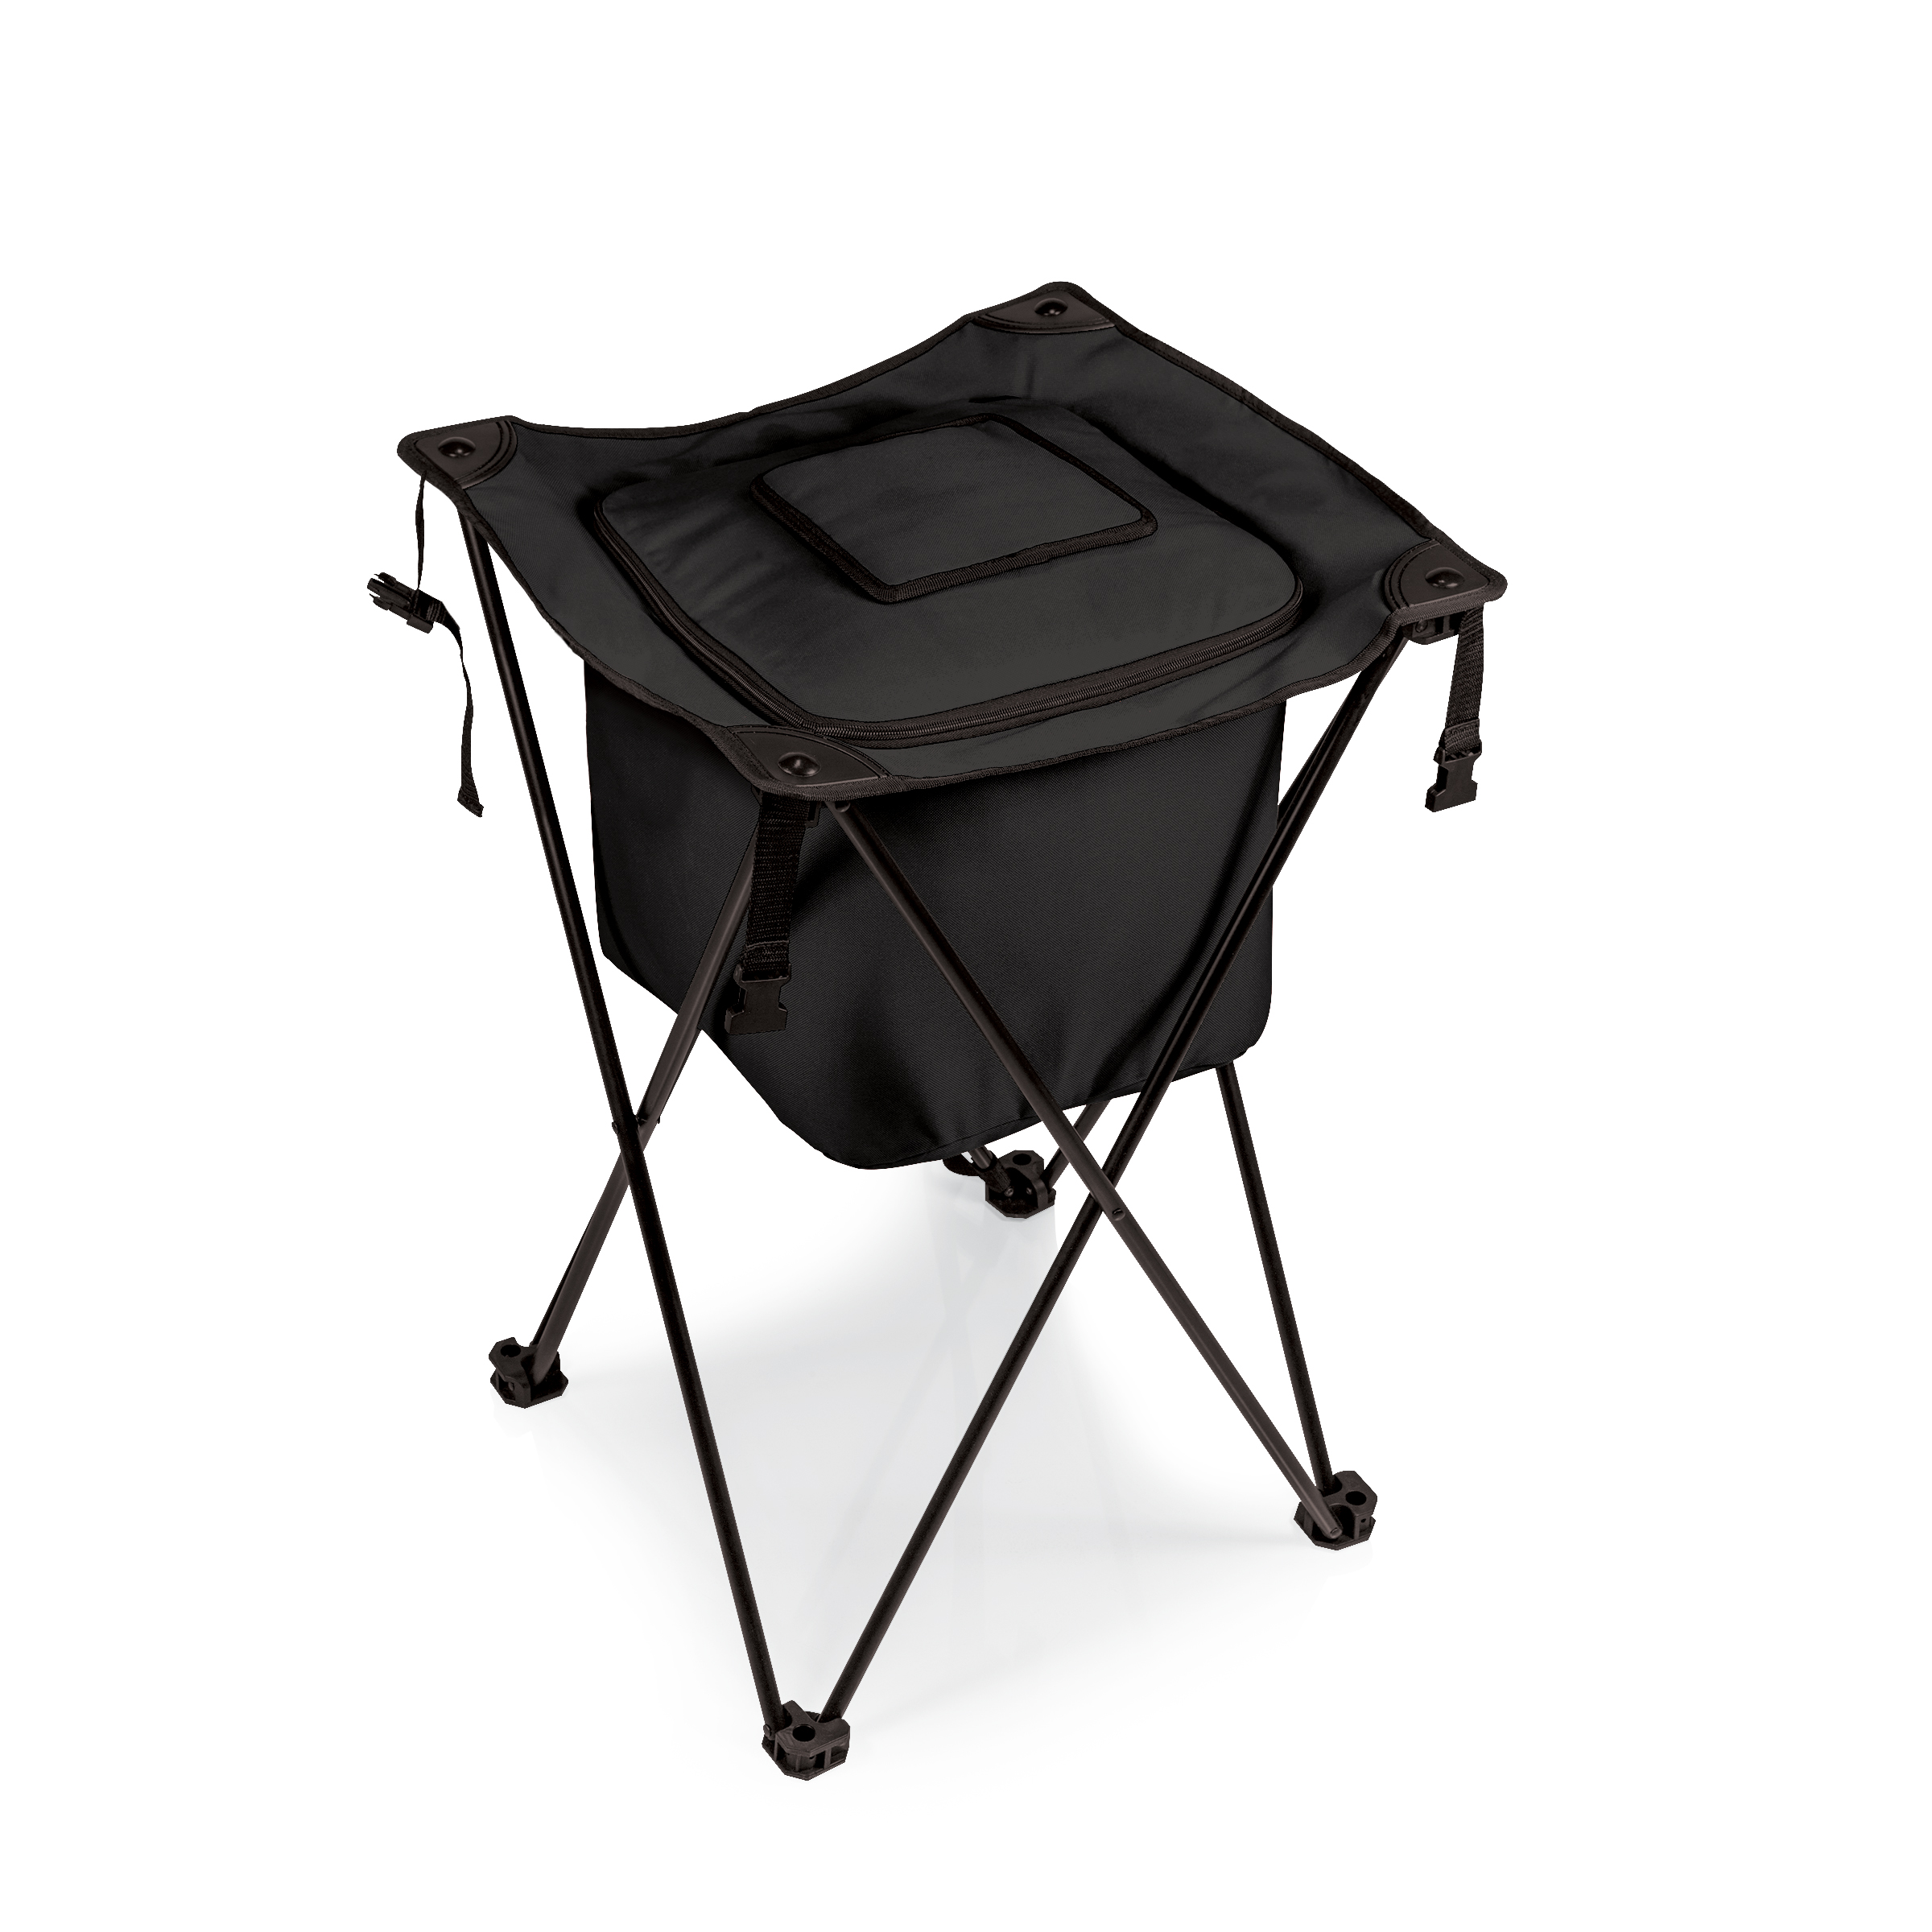 RETURN: The Sidekick Portable Cooler by Picnic Time - Black